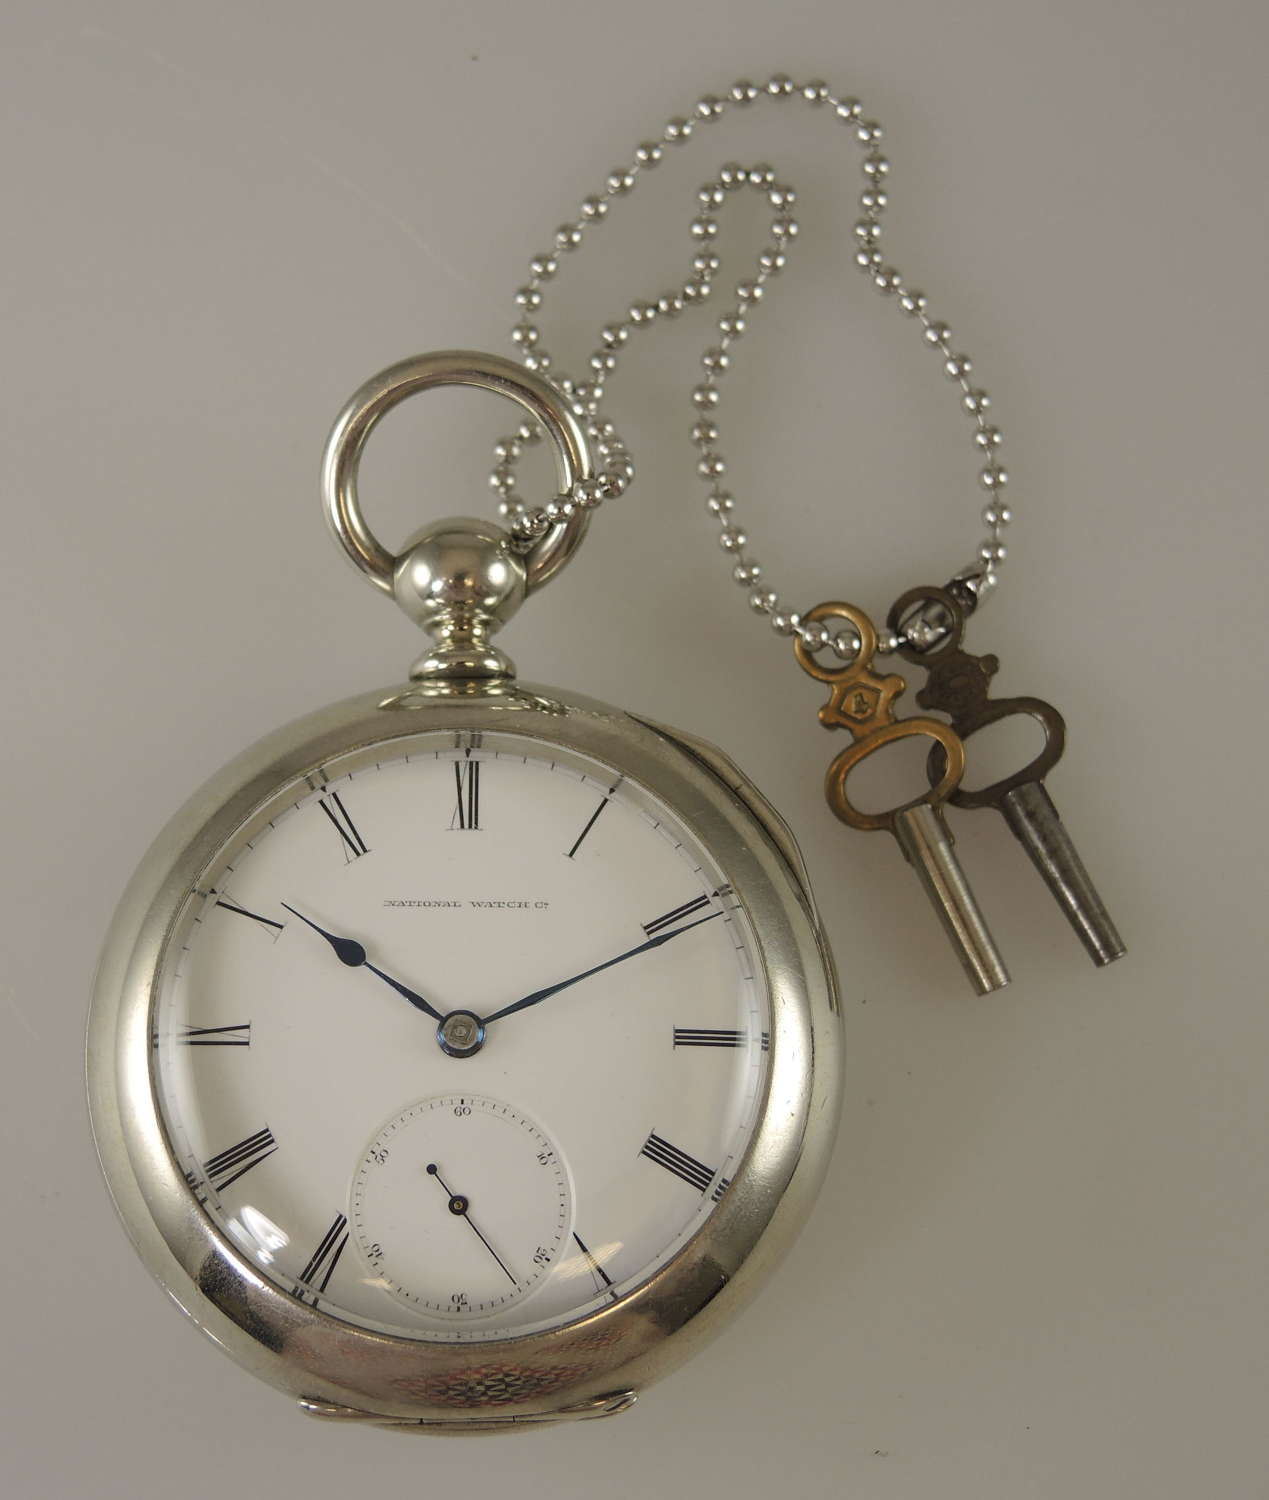 18s private label Elgin pocket watch with pierced watch cock c1873